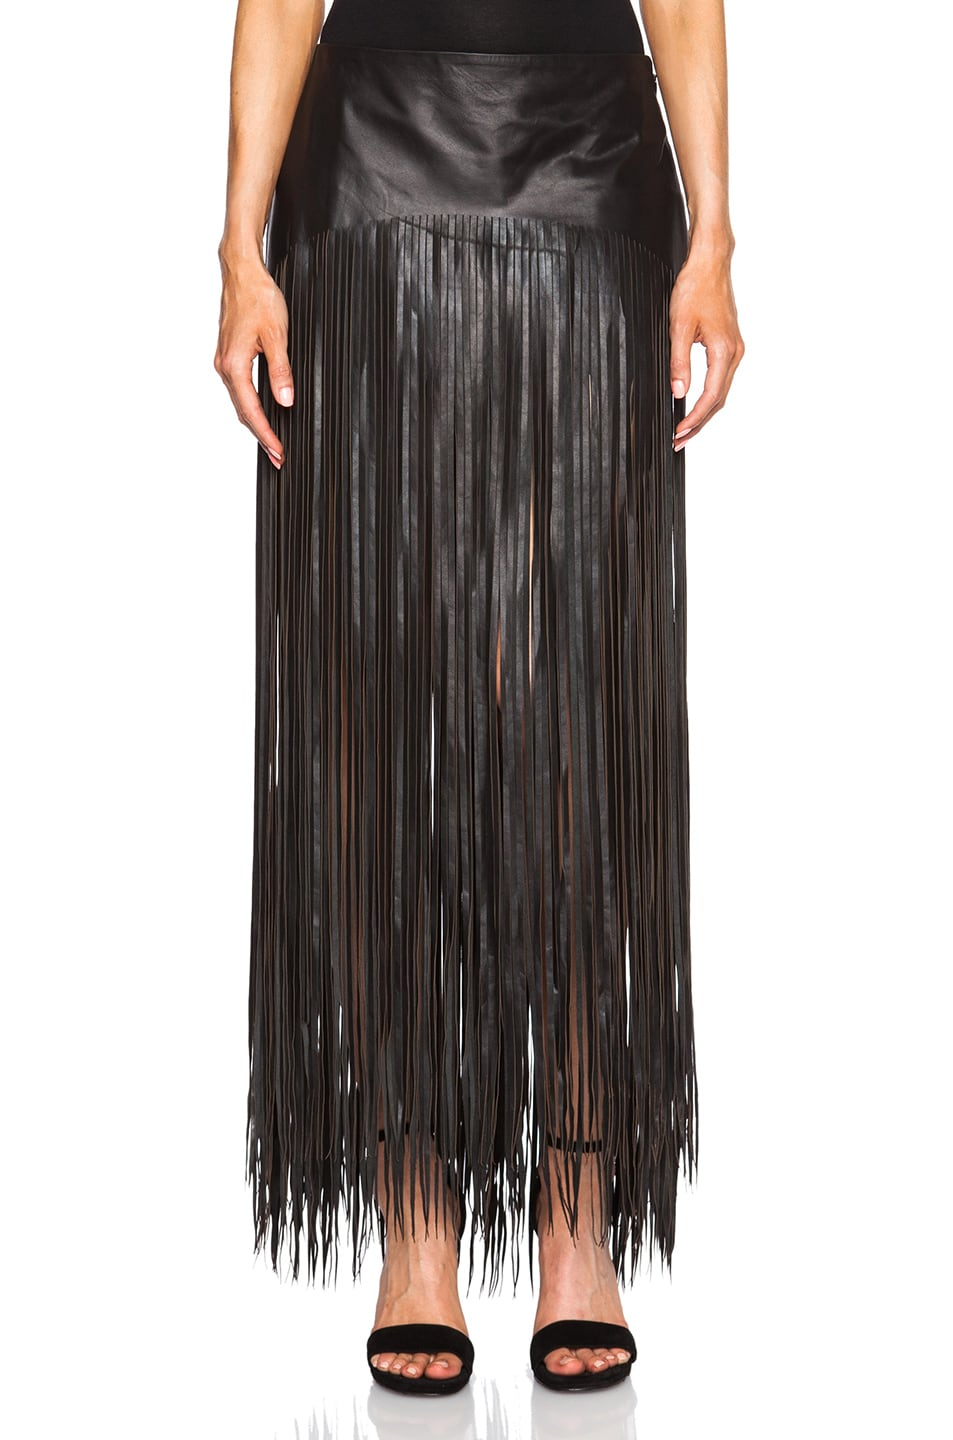 BLK DNM Fringe Leather Skirt 21 in Black | FWRD